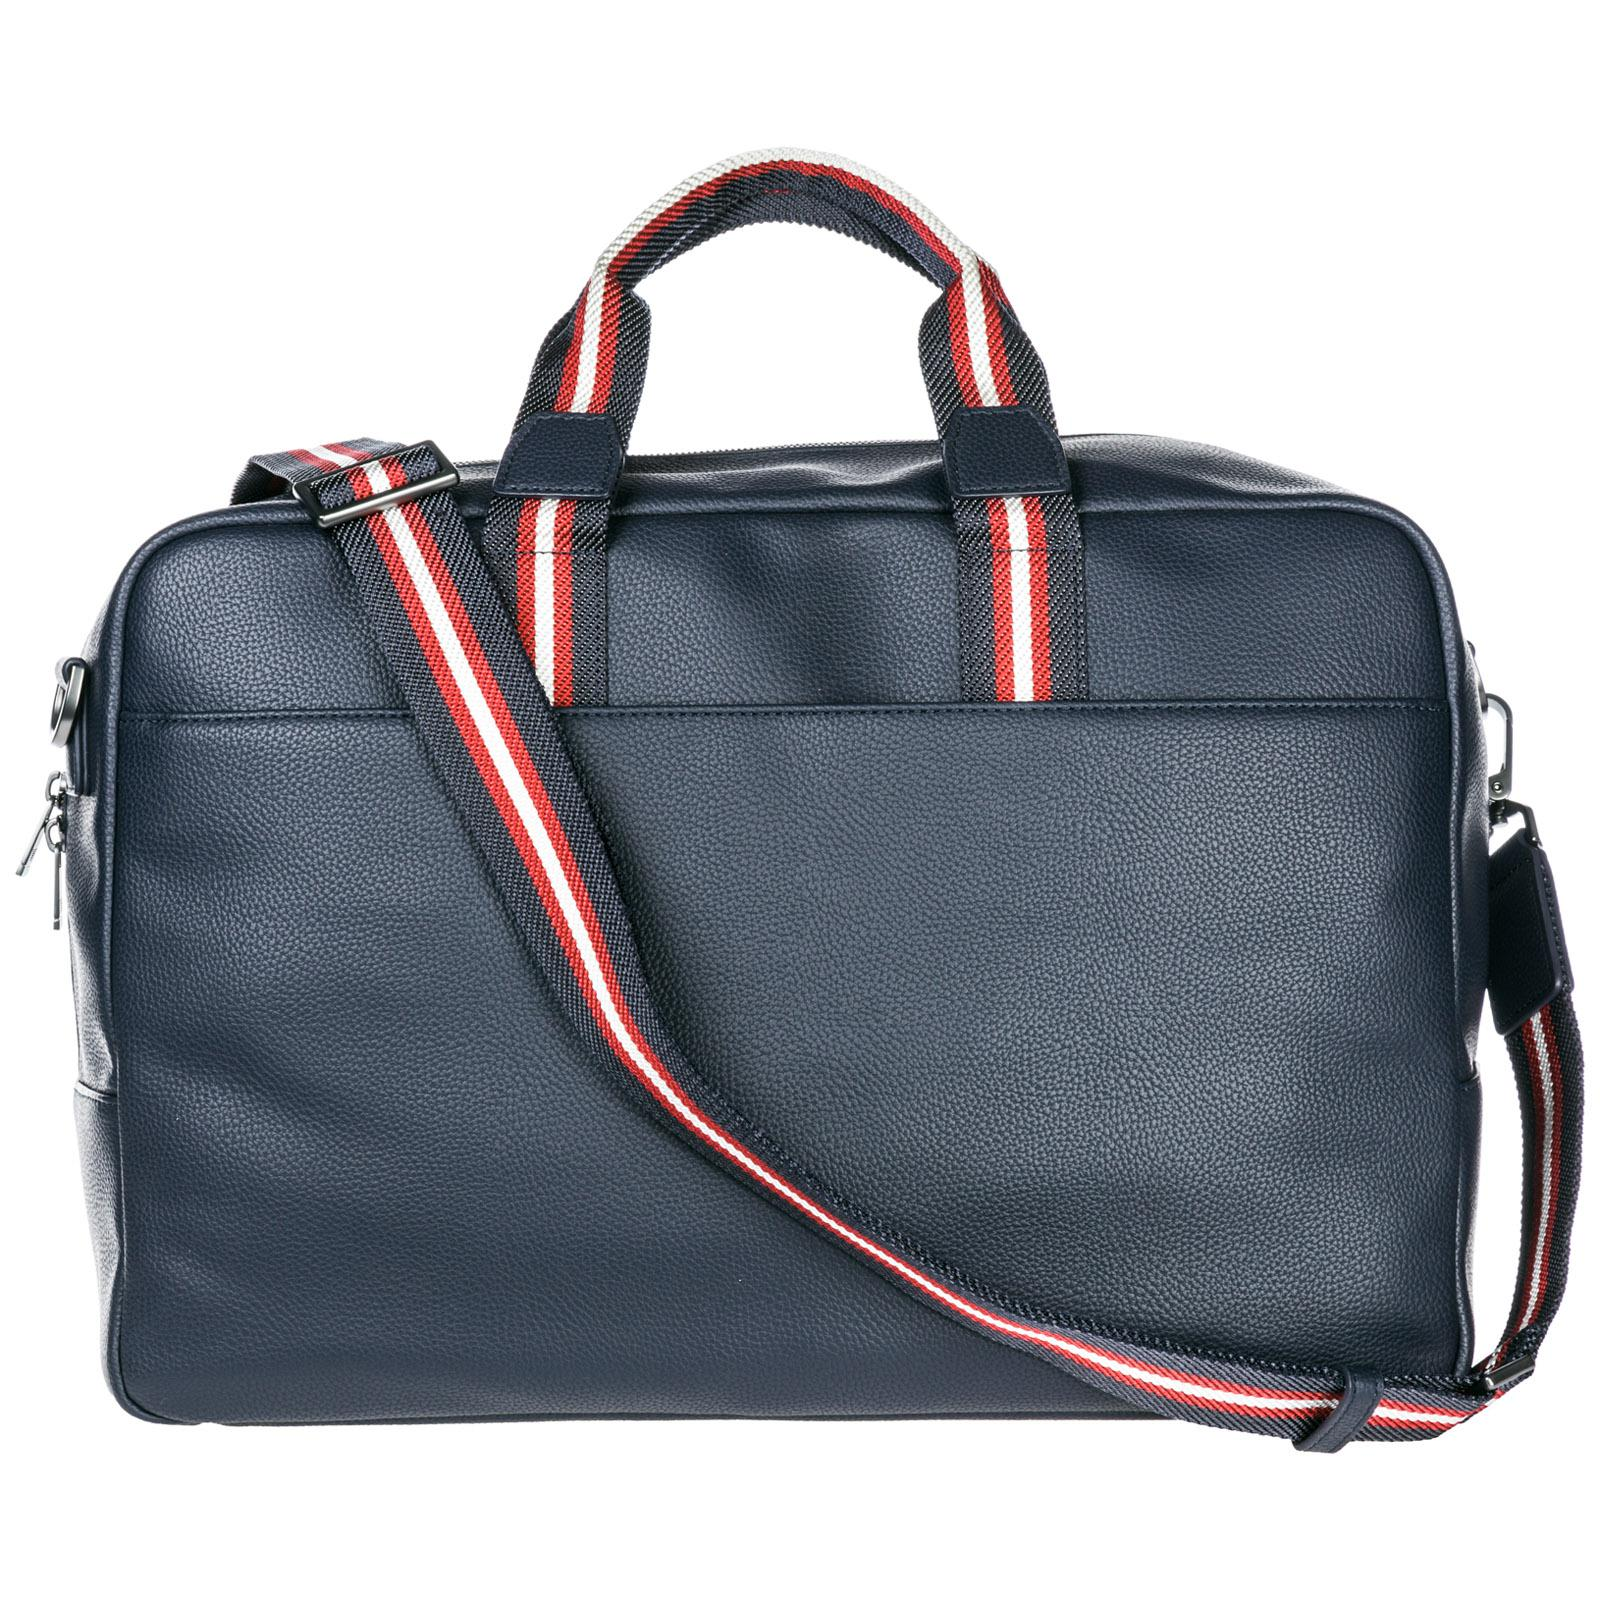 f4b6a40be202 Emporio Armani Travel Duffle Weekend Shoulder Bag in Blue for Men - Lyst